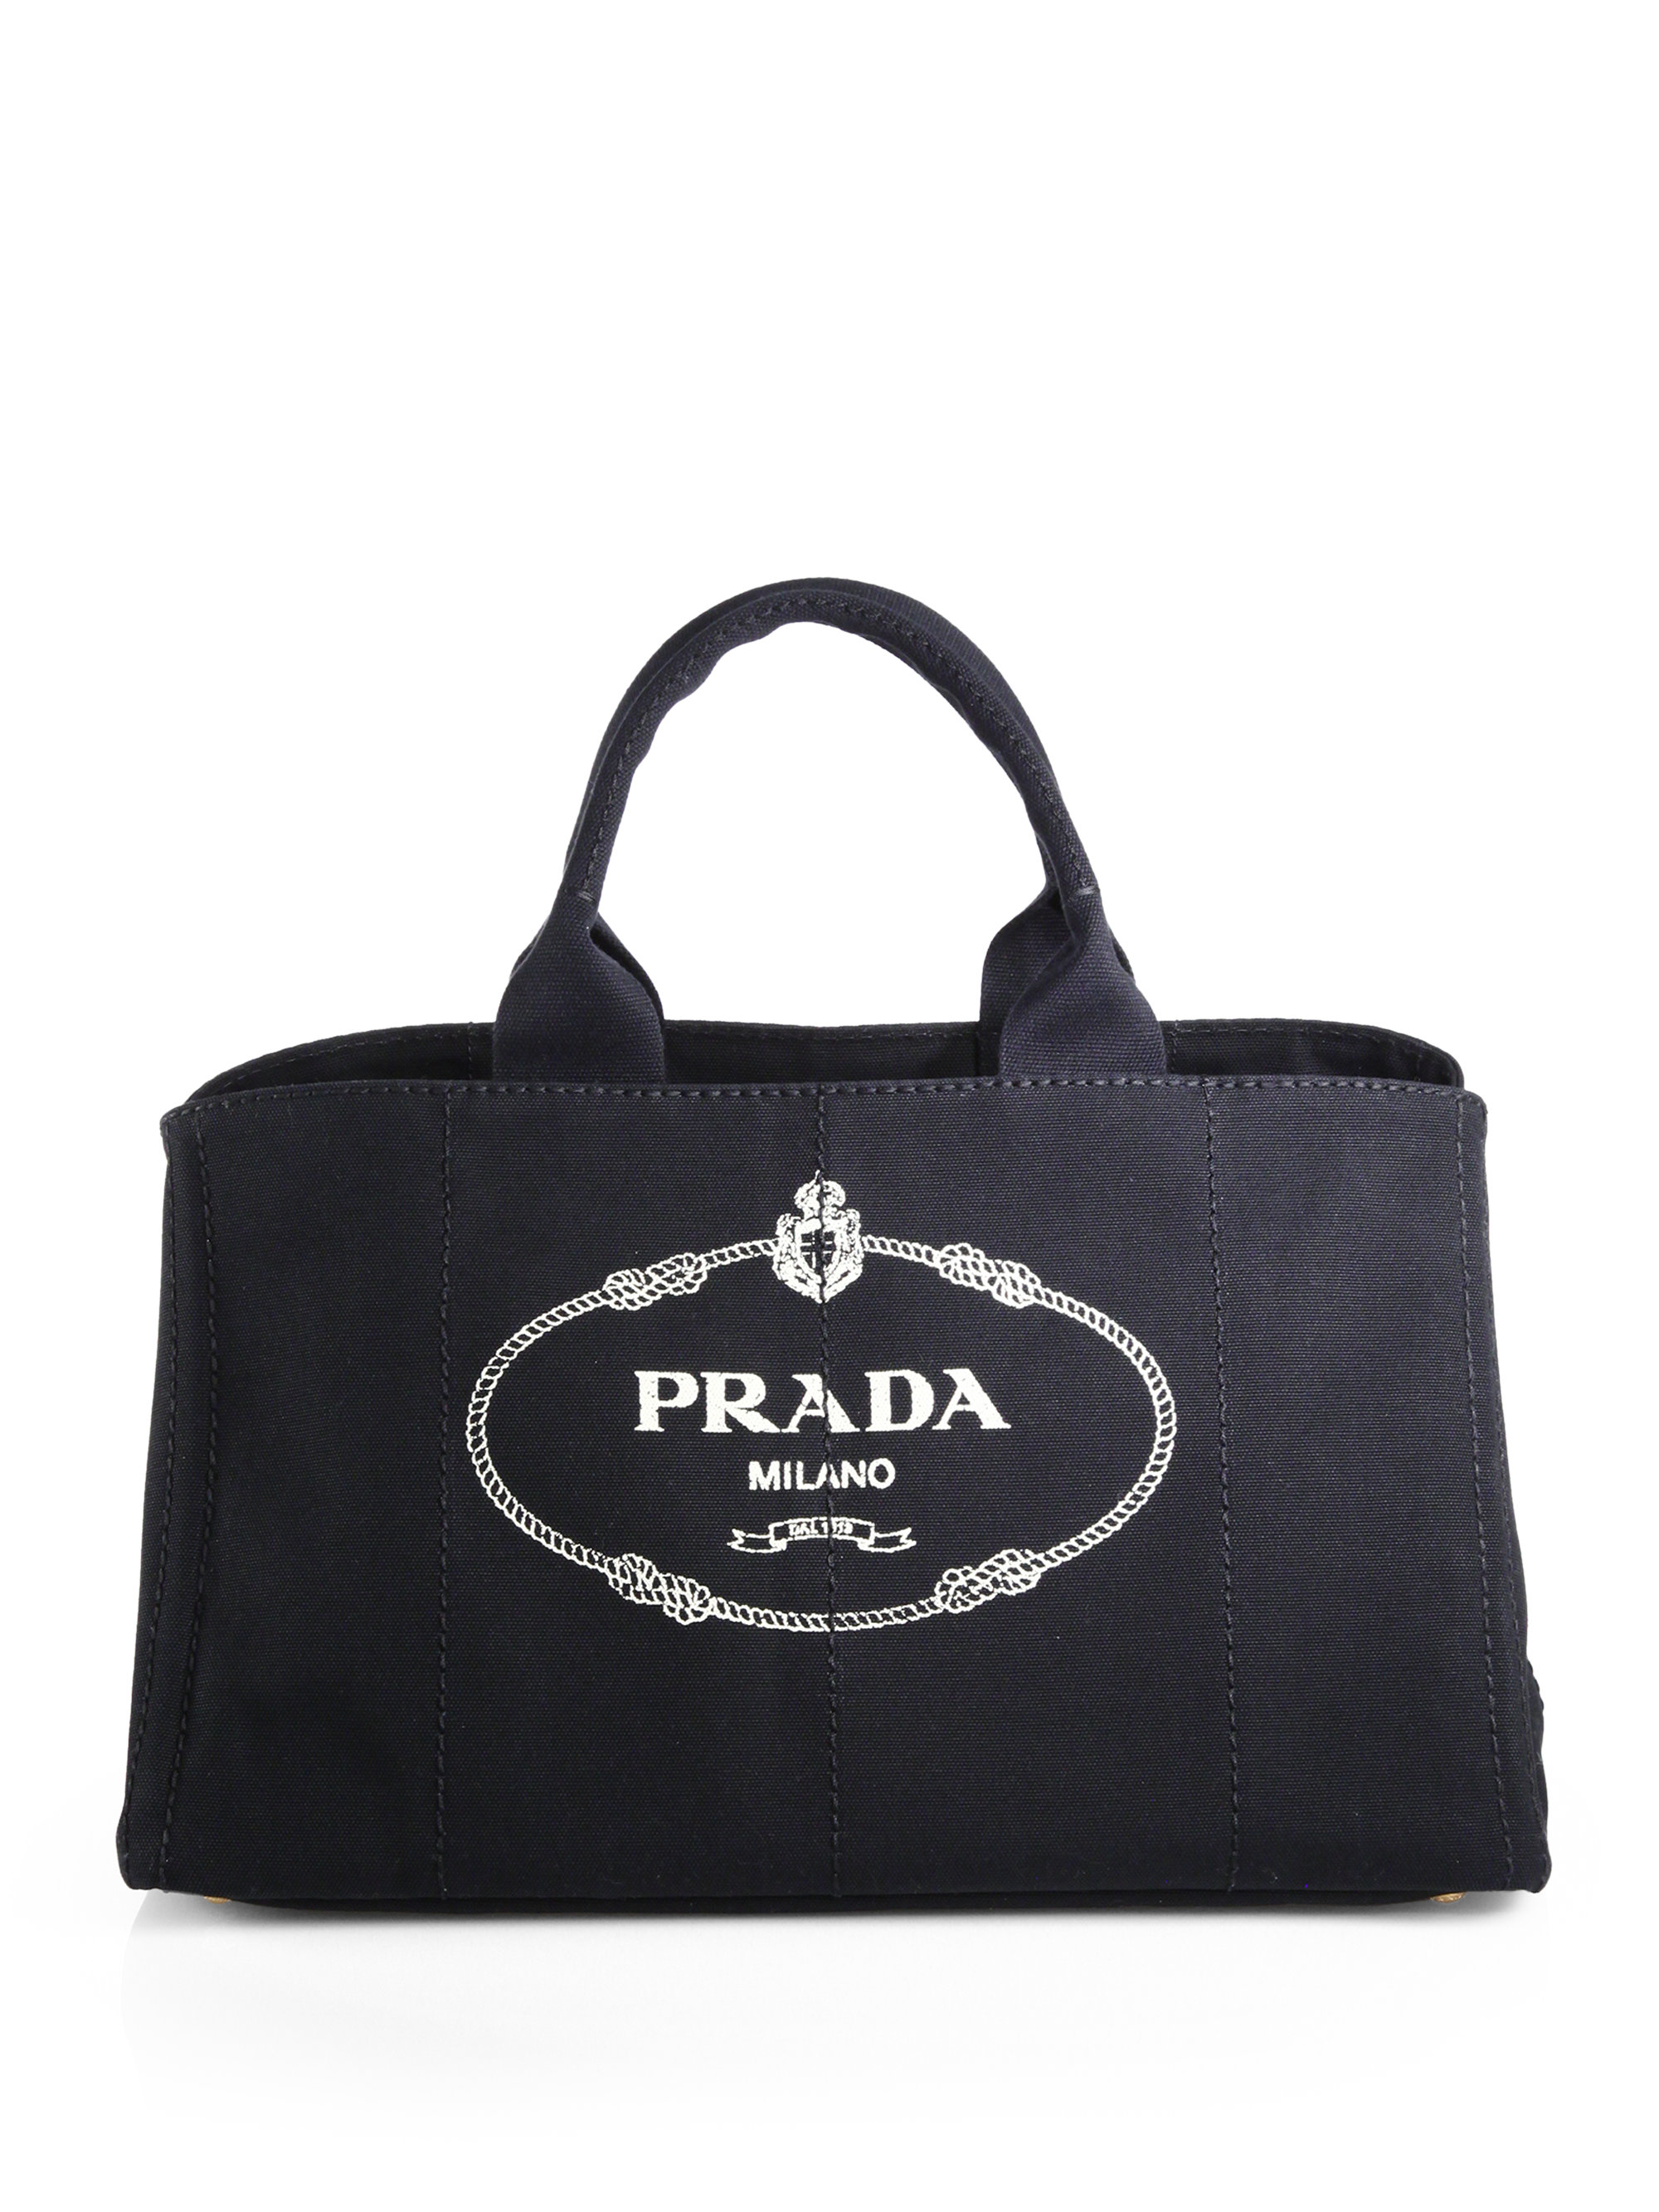 668325d8006e Prada Logo Printed Large Canvas Tote in Black - Lyst